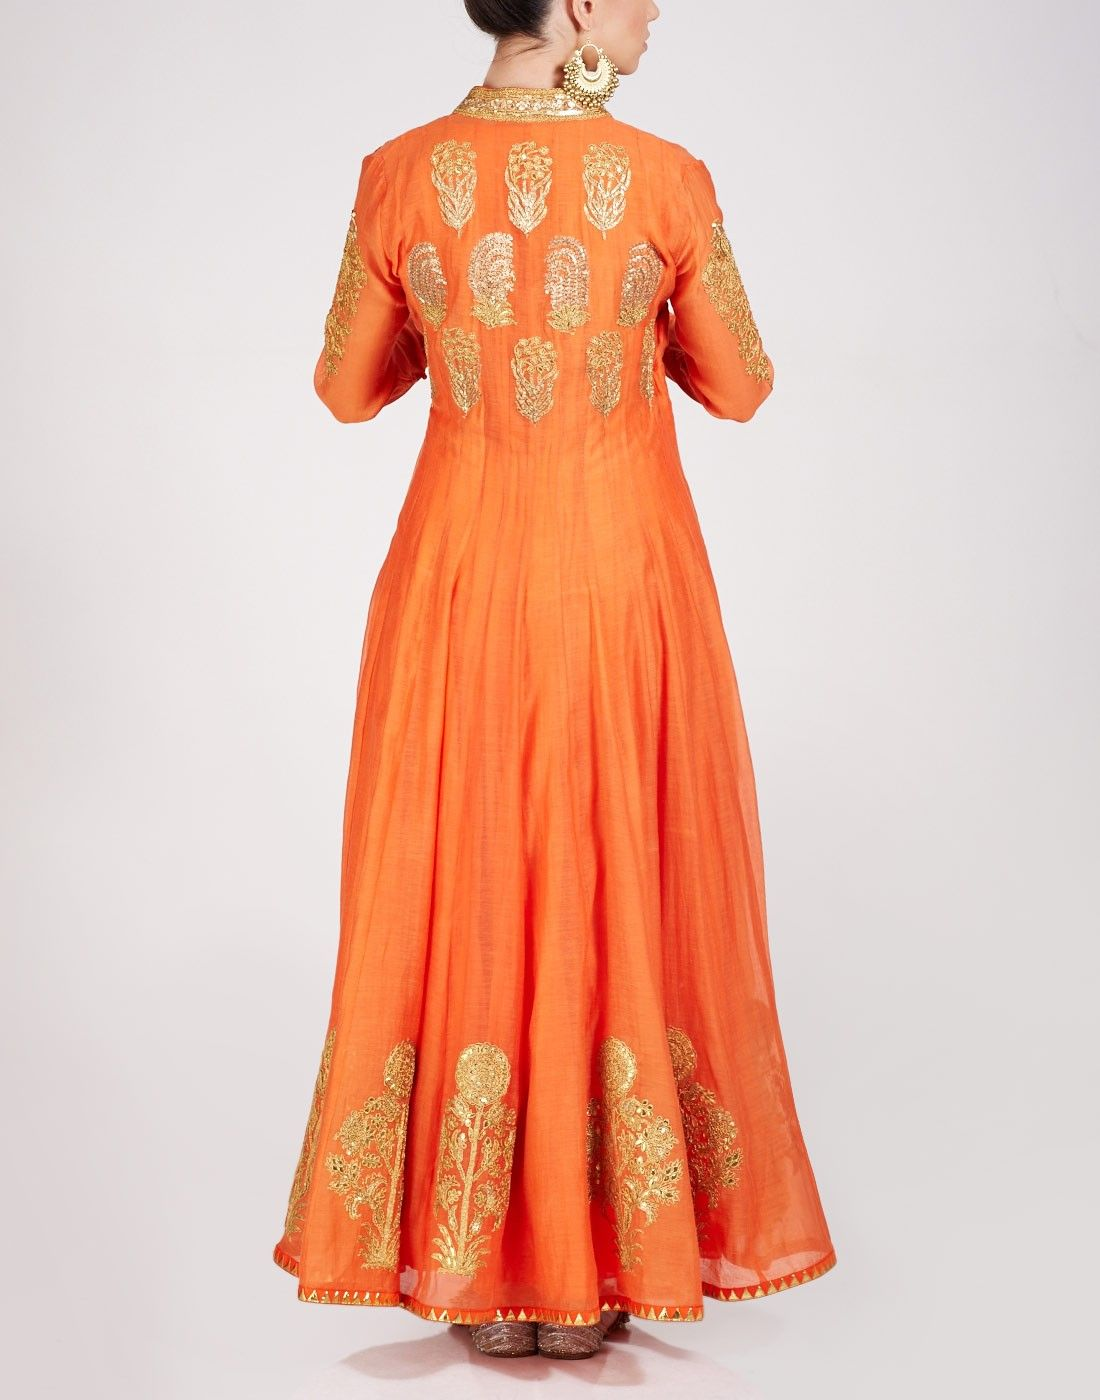 Ogaan Fashion Blogs Latest Indian Fashion Trends For 2017: Buy Orange Jacket Kurta Available At Ogaan Online Shop